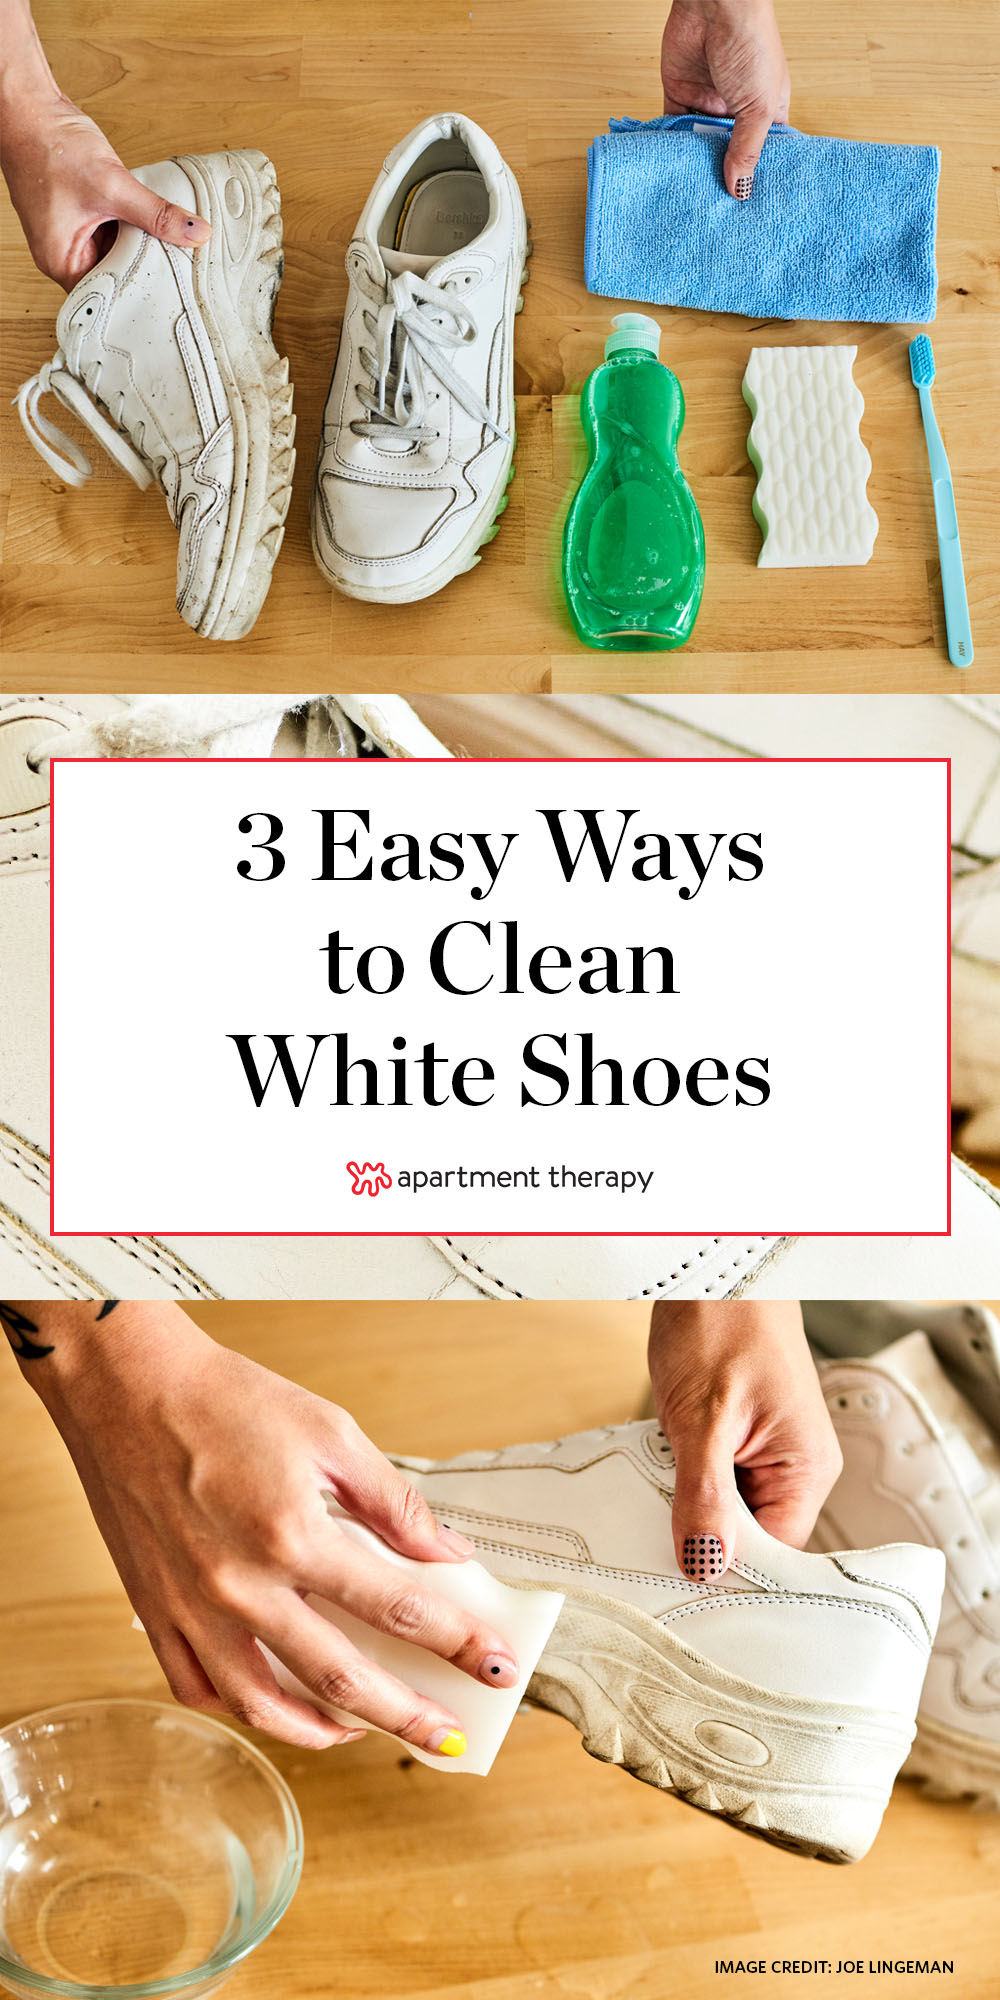 How to Clean White Shoes | Apartment